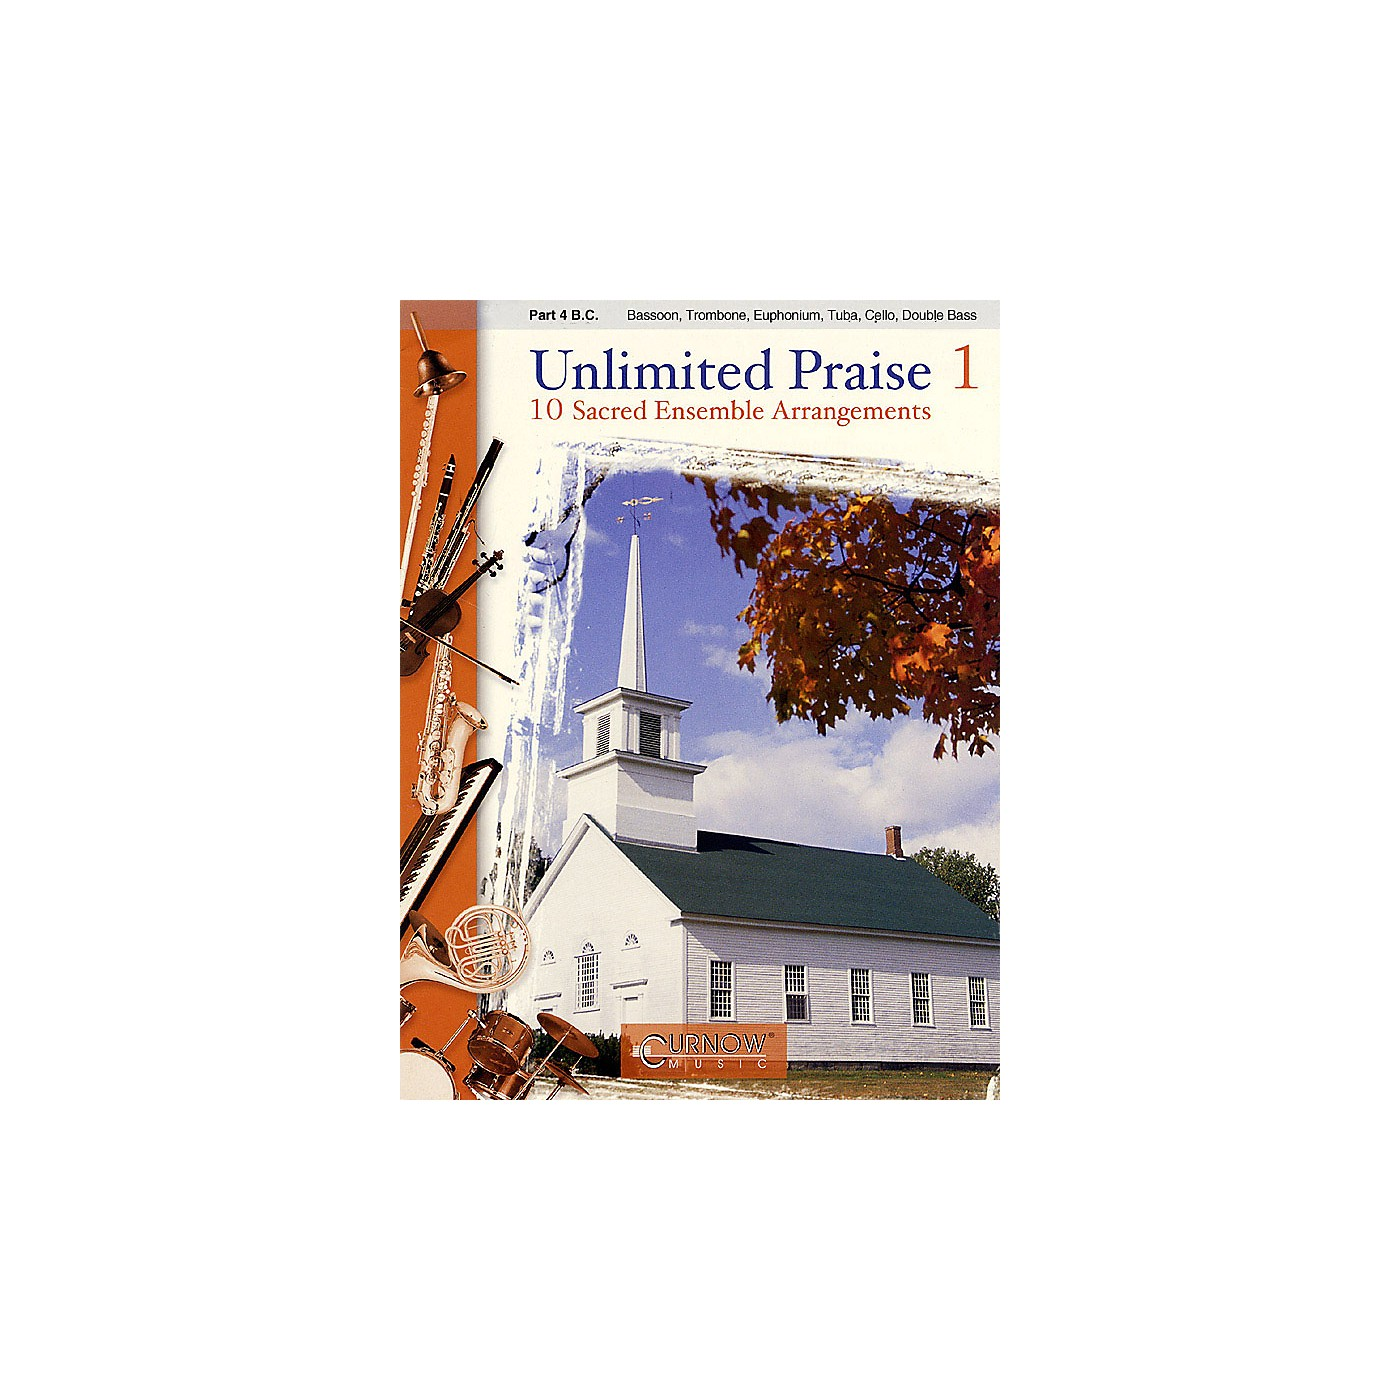 Curnow Music Unlimited Praise (Part 4 - Bass Clef) Concert Band Level 2-4 thumbnail